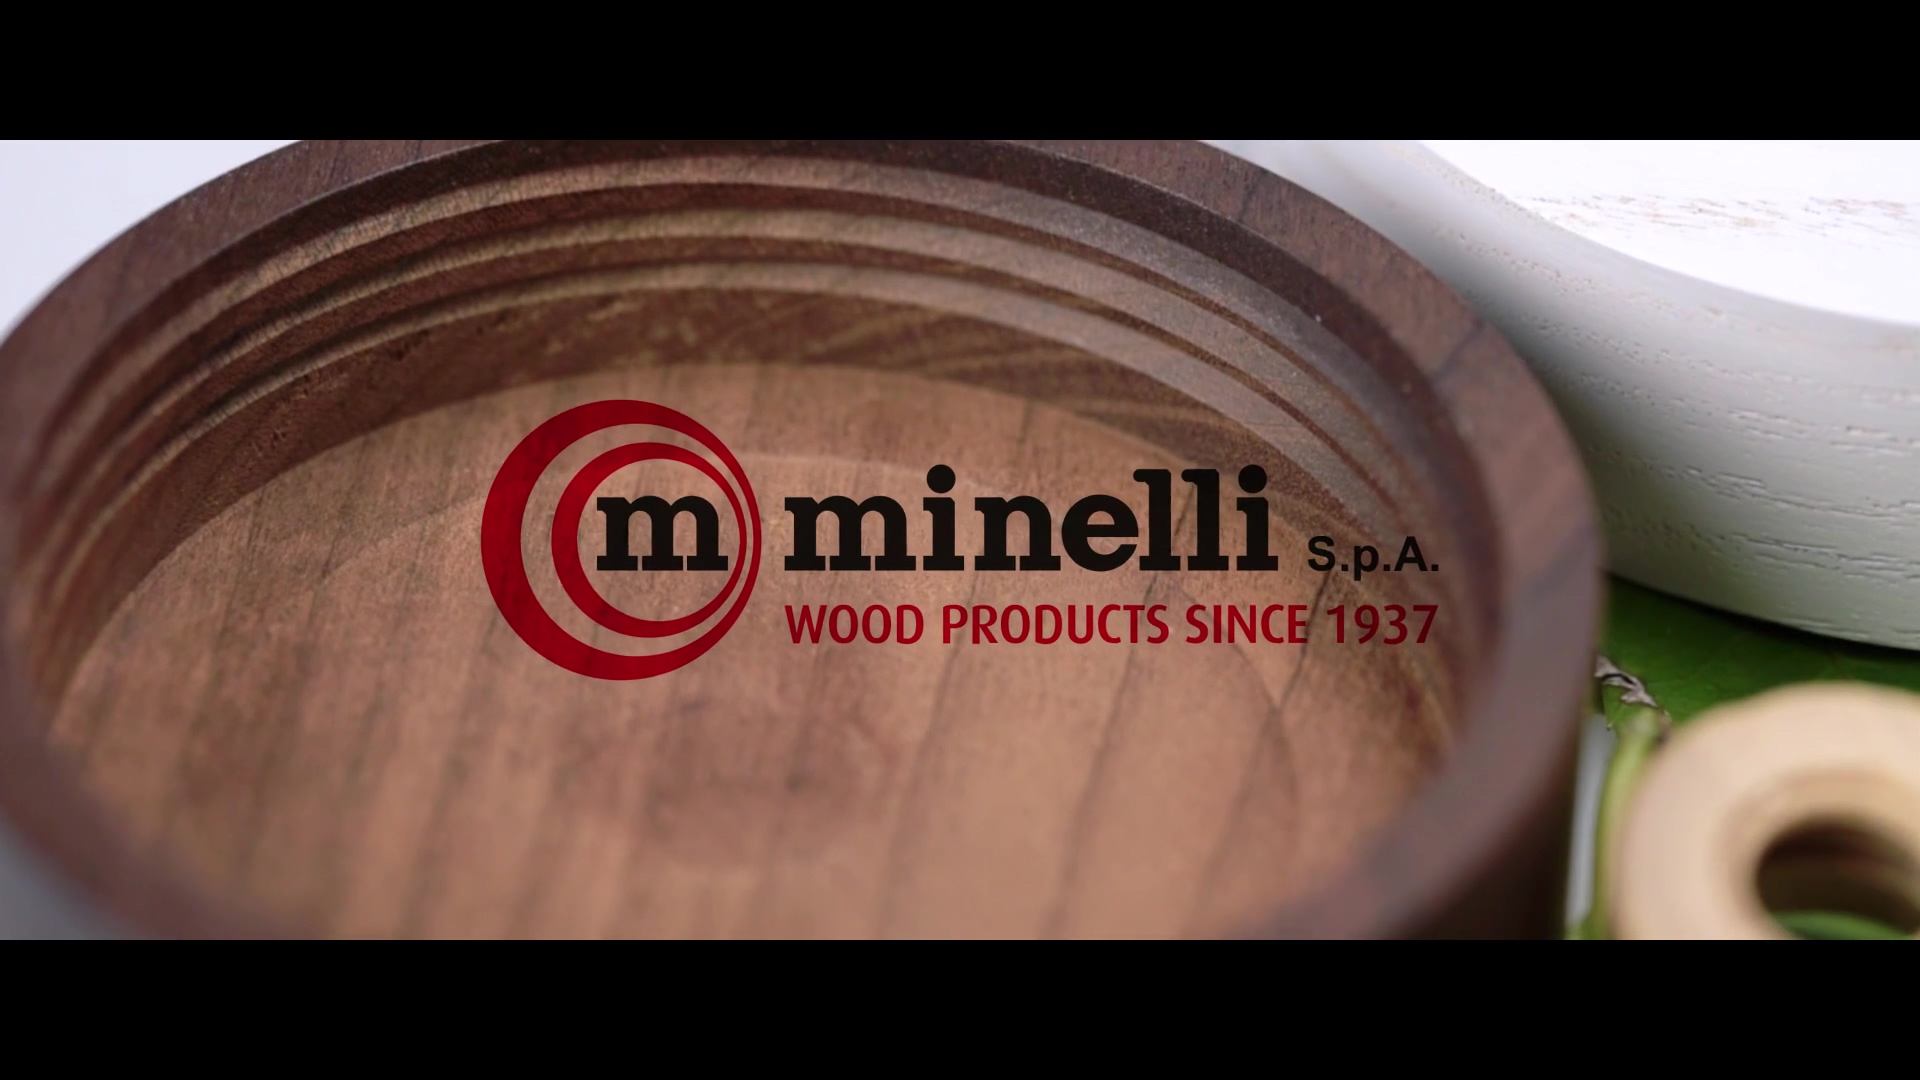 Minelli-group-perfume-and-cosmetic-division